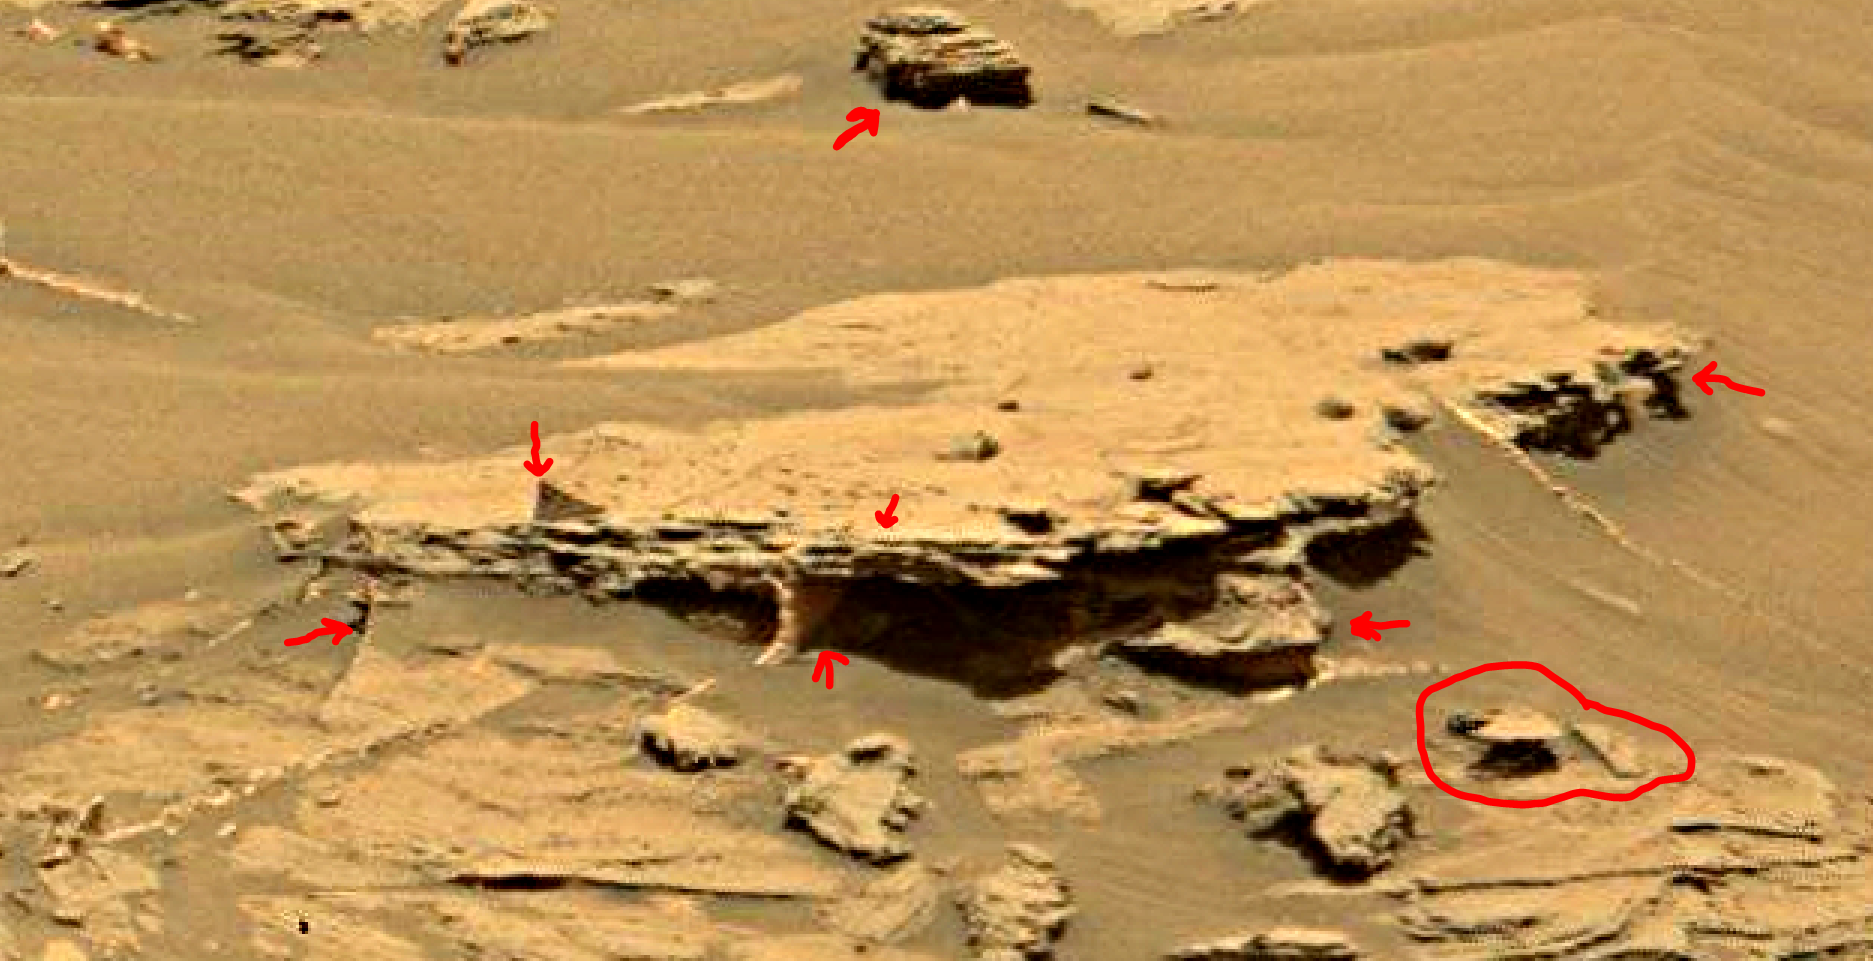 mars sol 1353 anomaly-artifacts 37a was life on mars